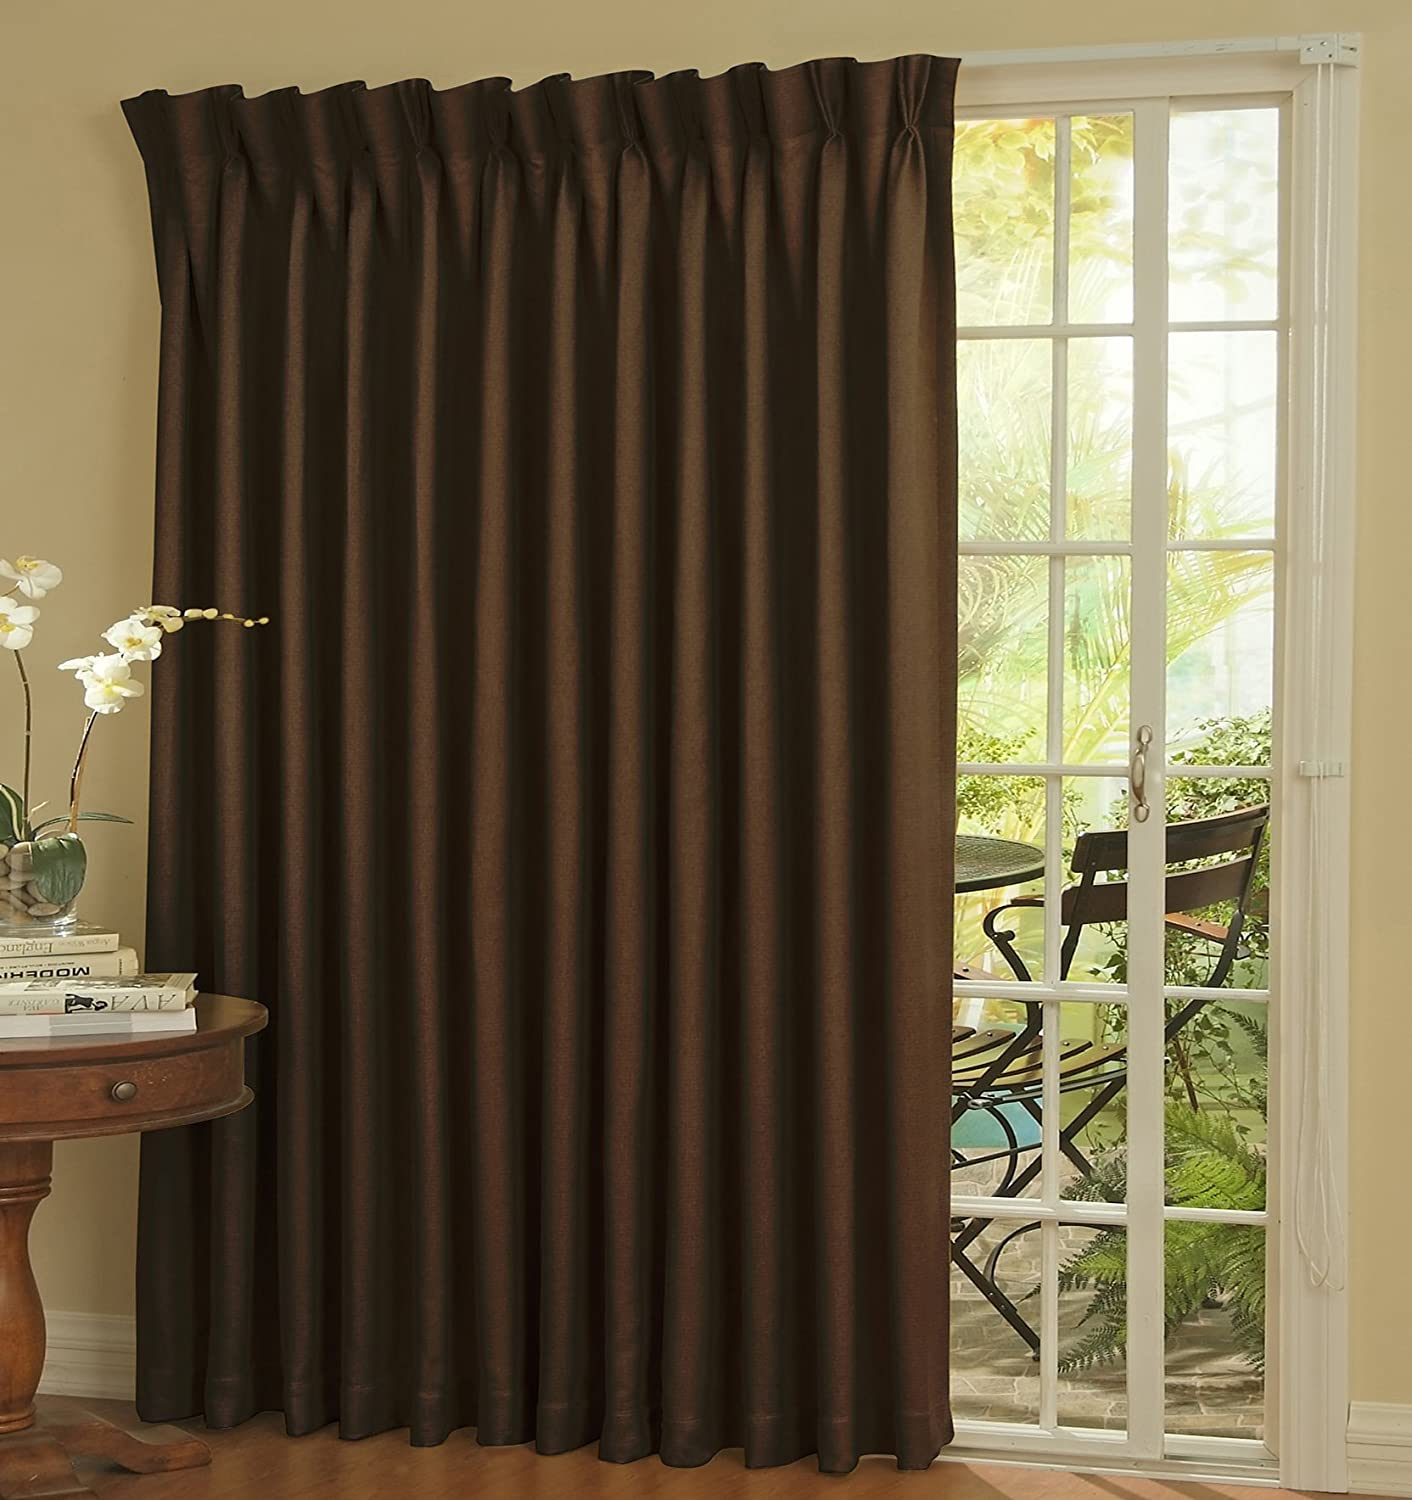 Shower Curtains For Curved Rods Wooden Bead Curtains Target